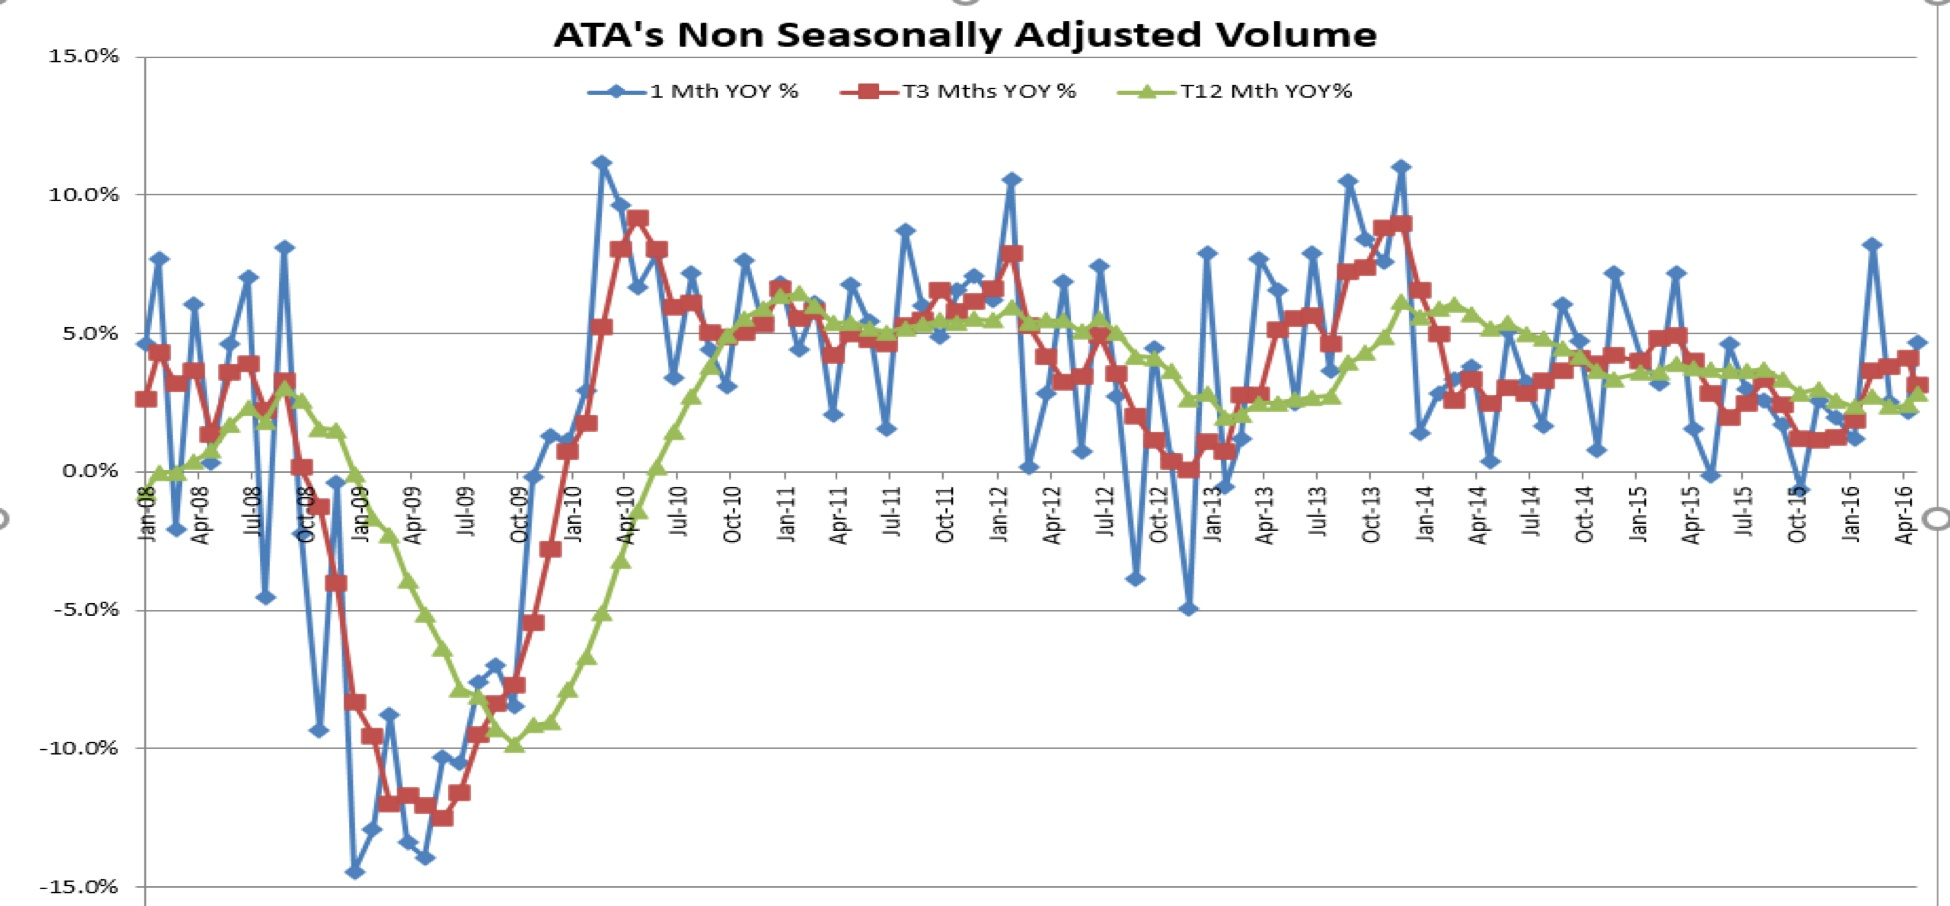 TLI_Edge Newsletter_Issue 14-ATAs_NonSeasonal_Adjusted_Volume.jpg